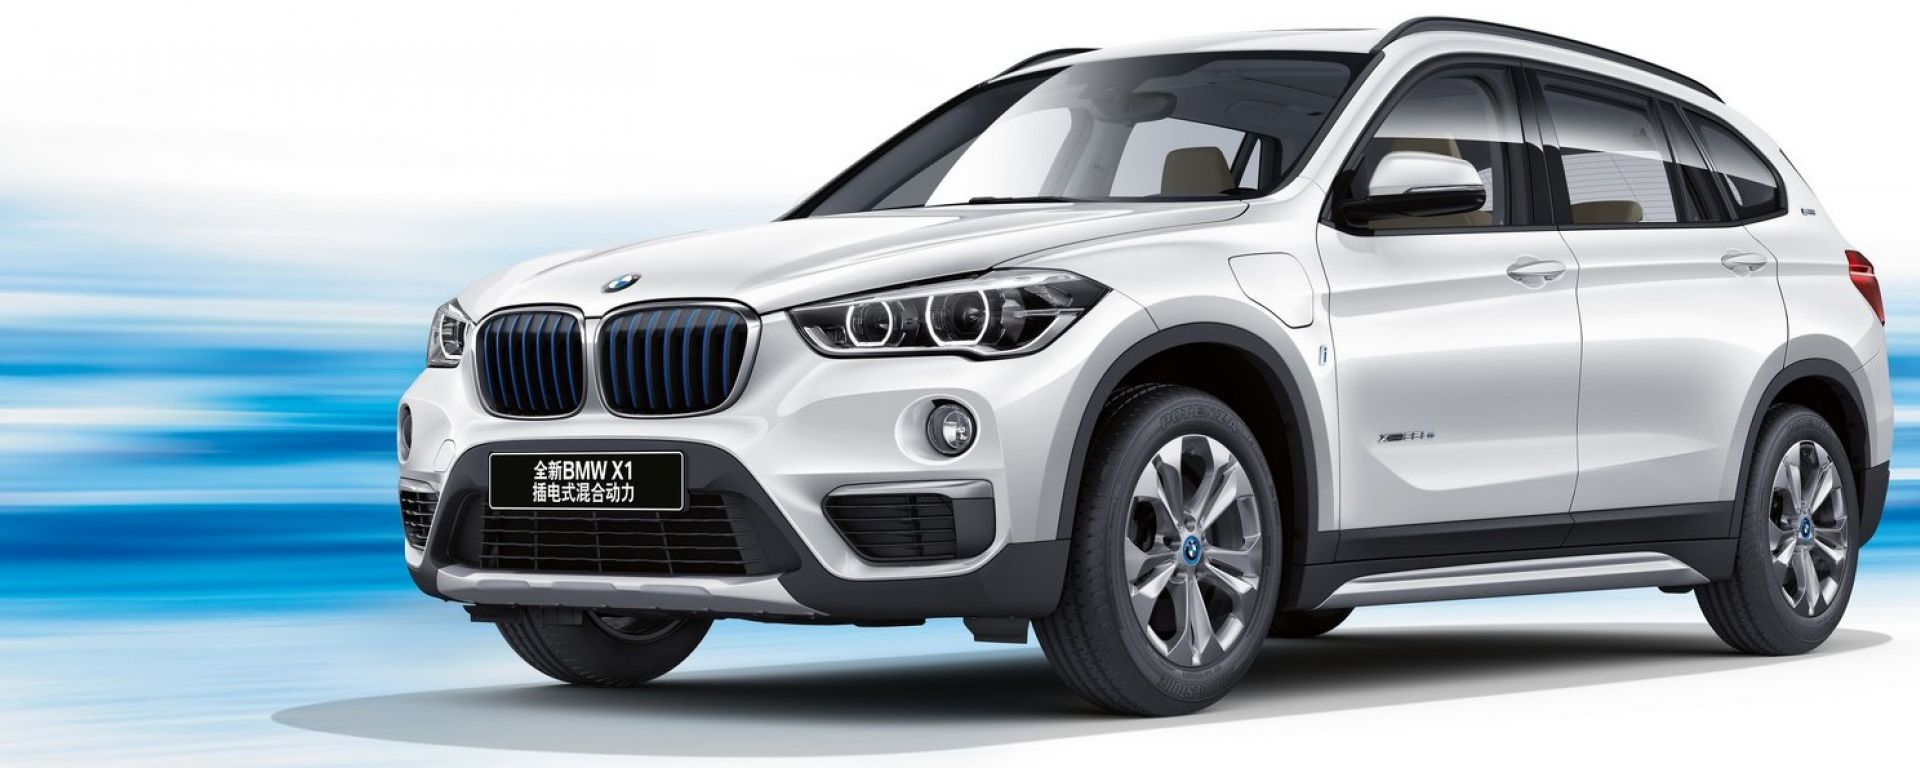 BMW X1 xDrive25Le iPerformance: in Cina debutta l'ibrida plug-in